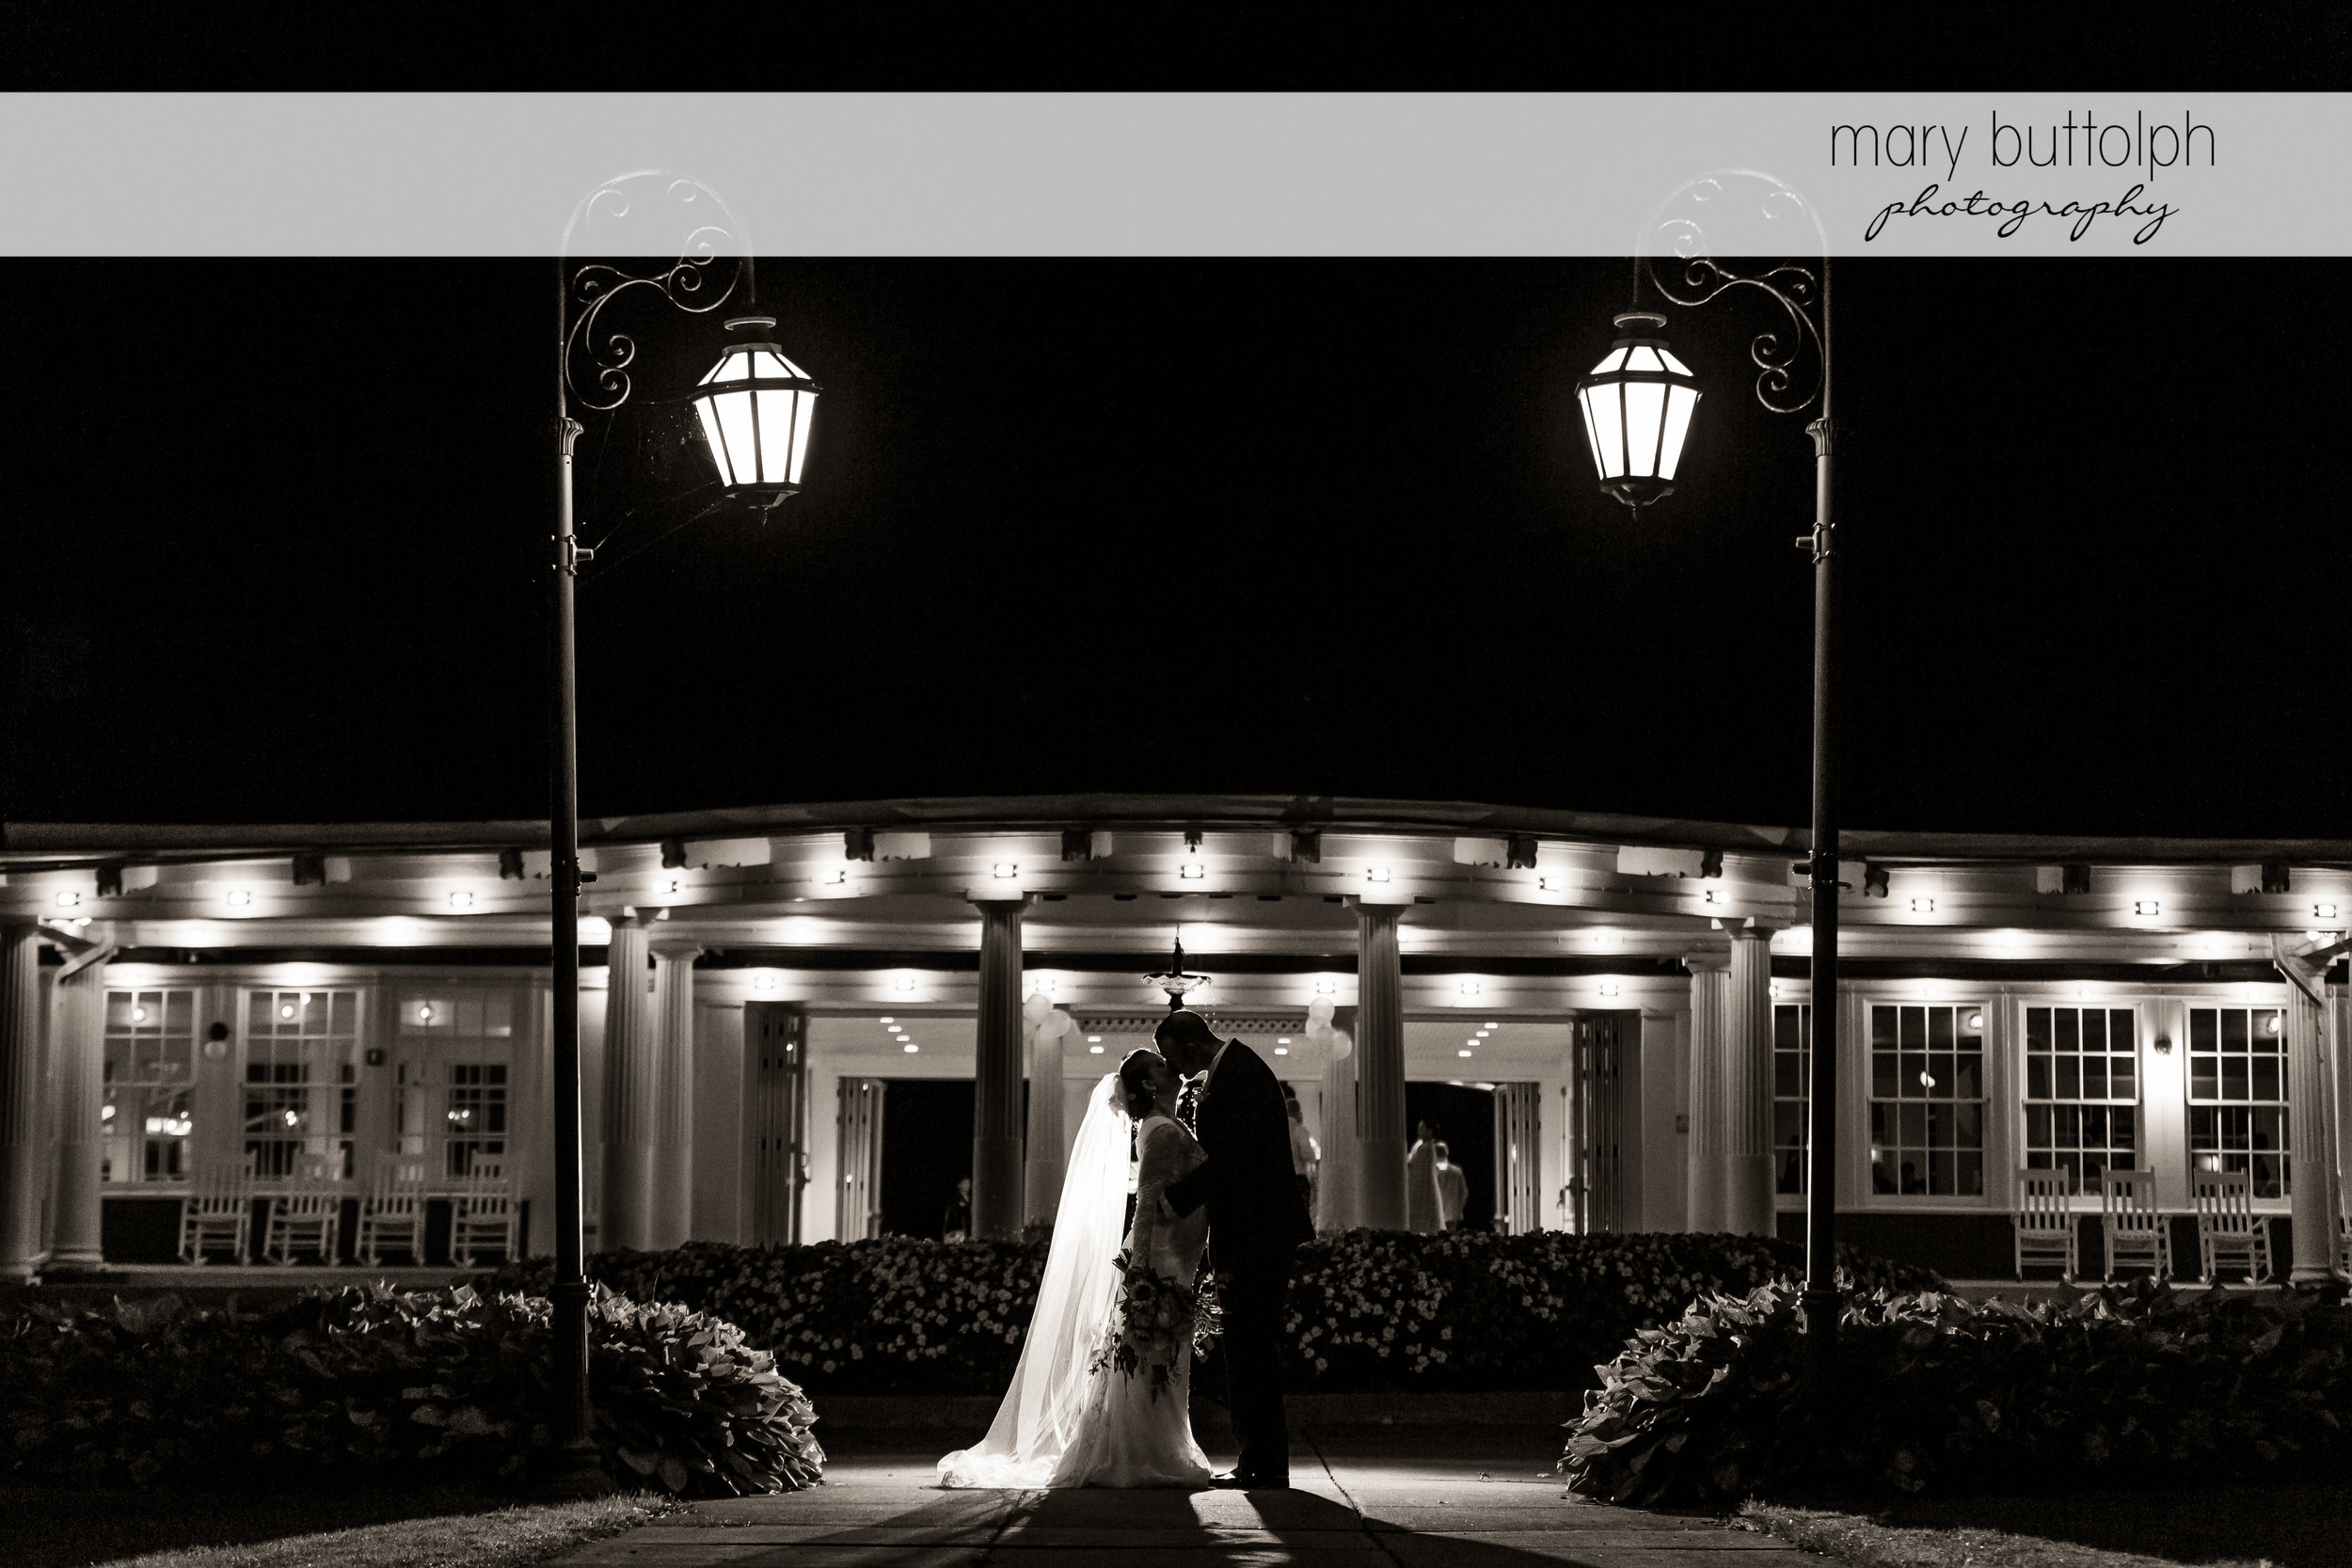 The couple in a dramatic black and white shot outside the wedding venue at Emerson Park Pavilion Wedding